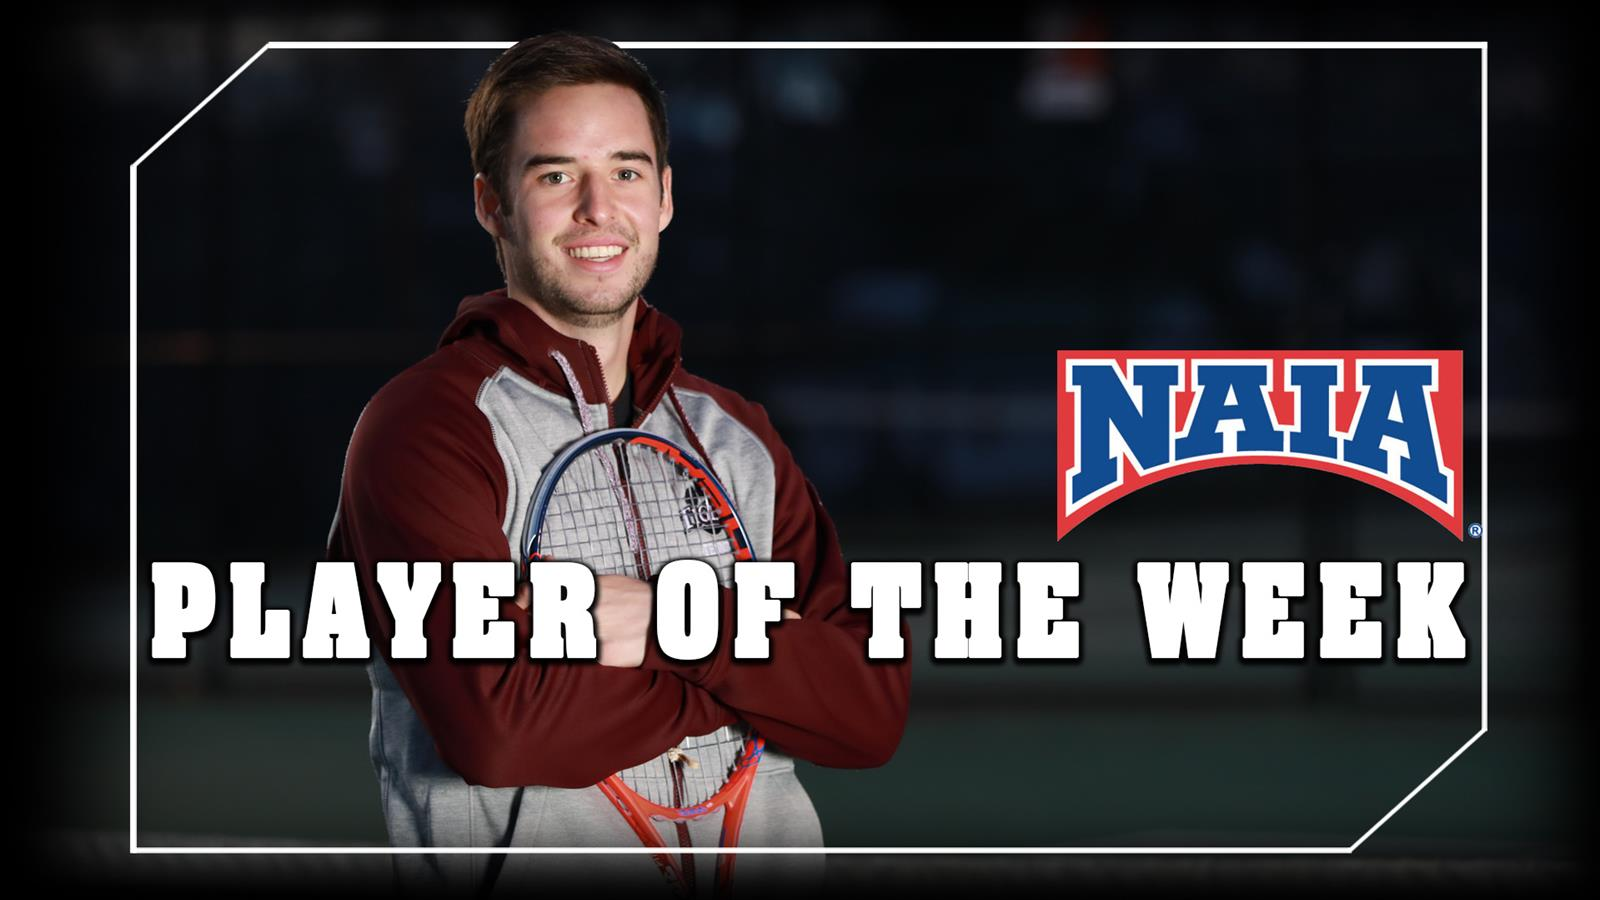 O Keefe Earns First Career Naia Men S Tennis Player Of The Week